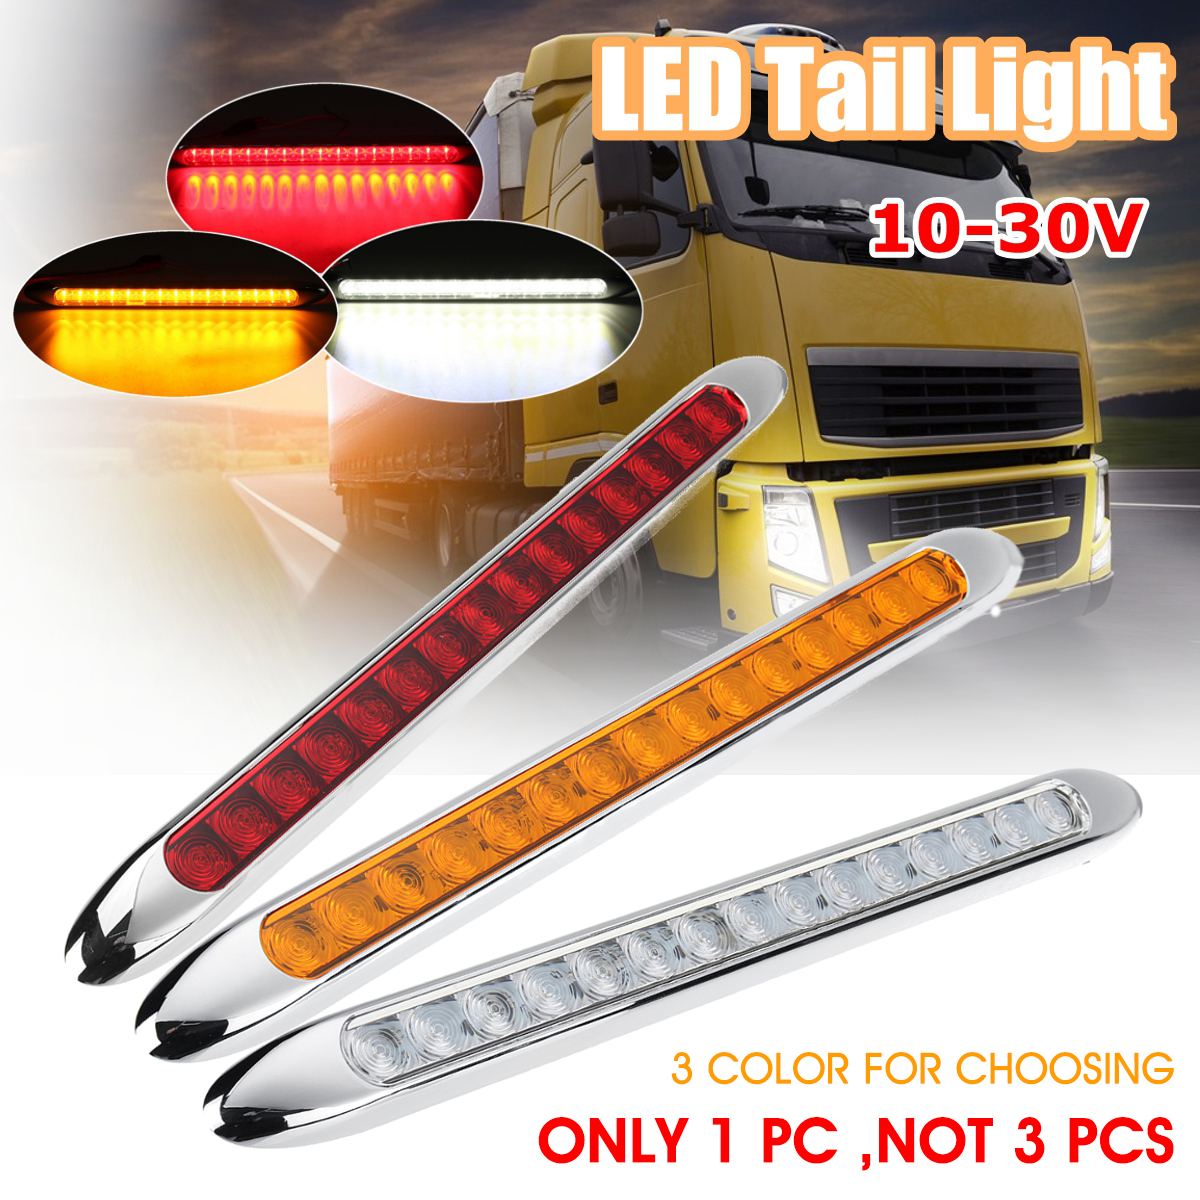 10-30V 15LED Ultra-slim Car Trailer Truck Caravan Tail Light Rear Stop Reverse Turn Signal Indicator Lamp Side Marker купить в Москве 2019